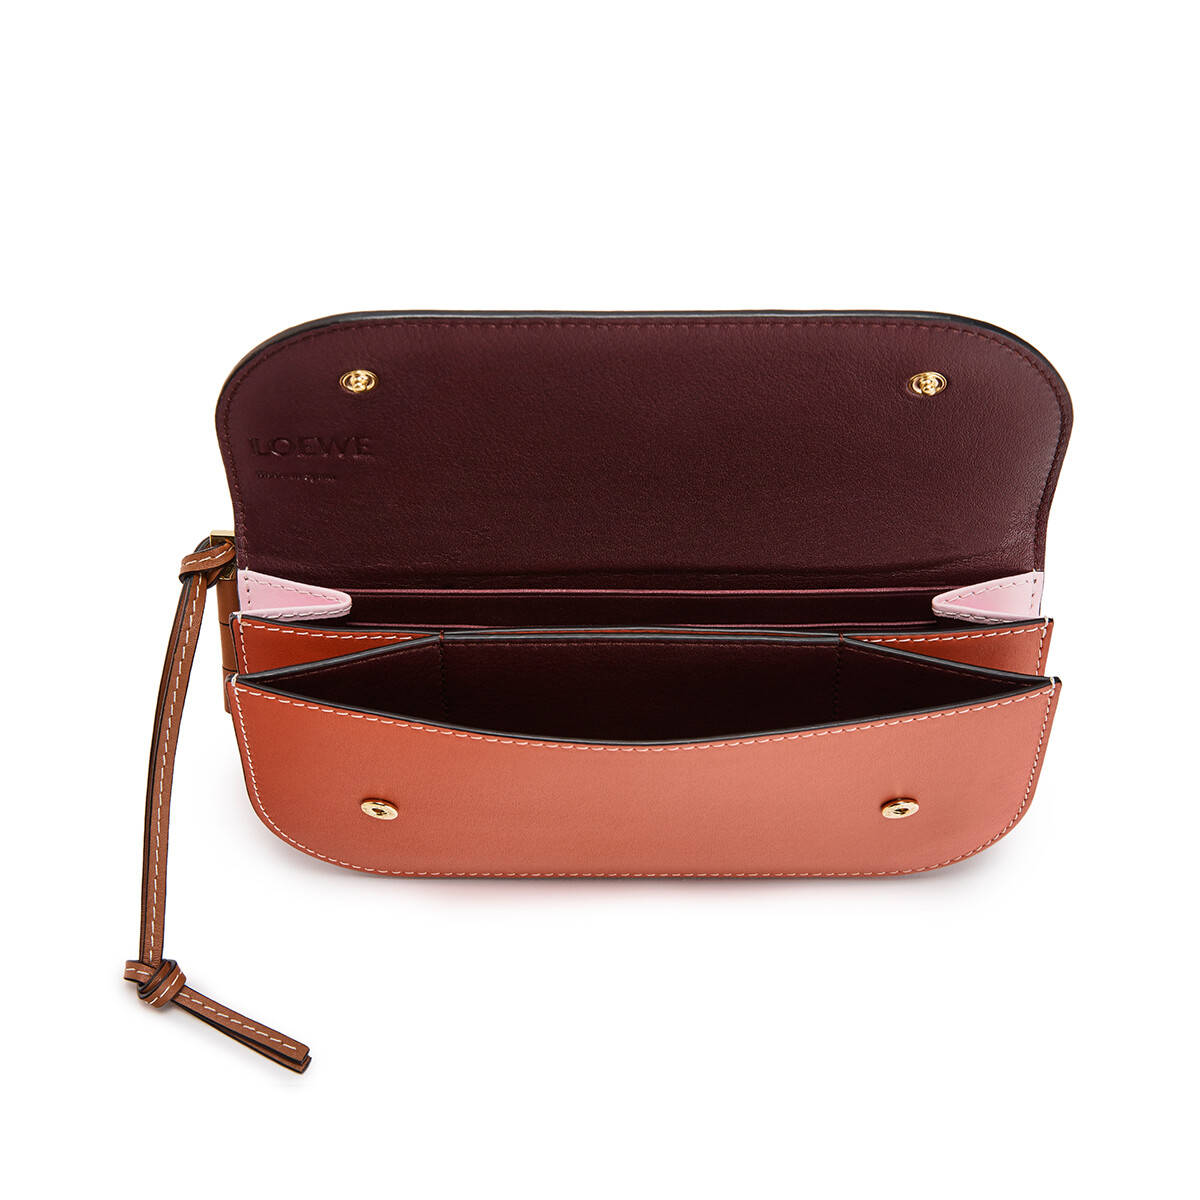 LOEWE Billetero Continental Gate Rosa Suave/Coral front